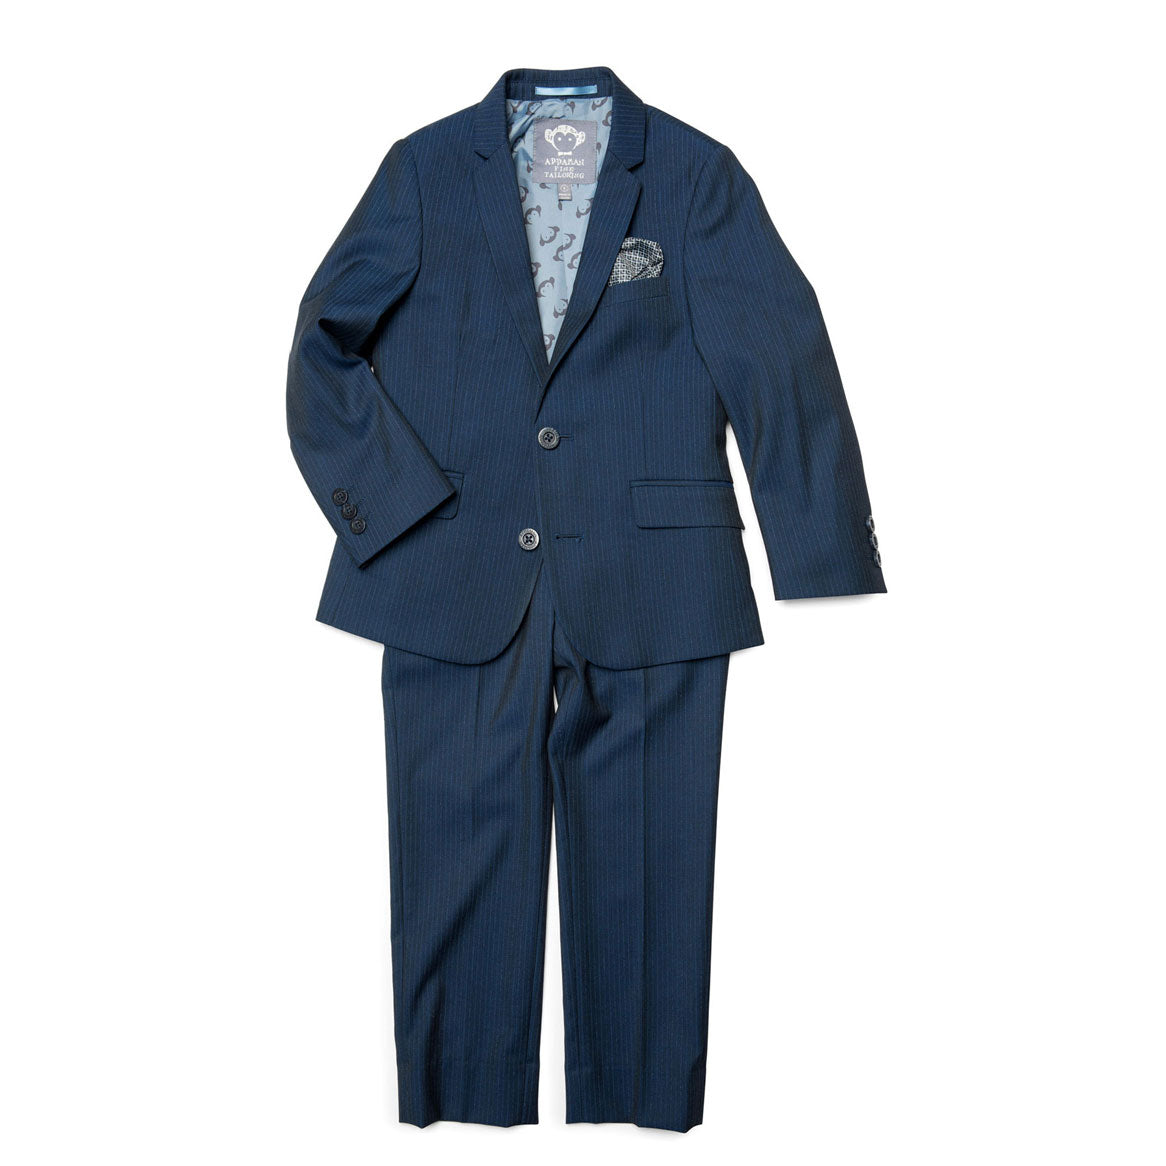 Appaman Navy Pencil Stripe Mod Suit